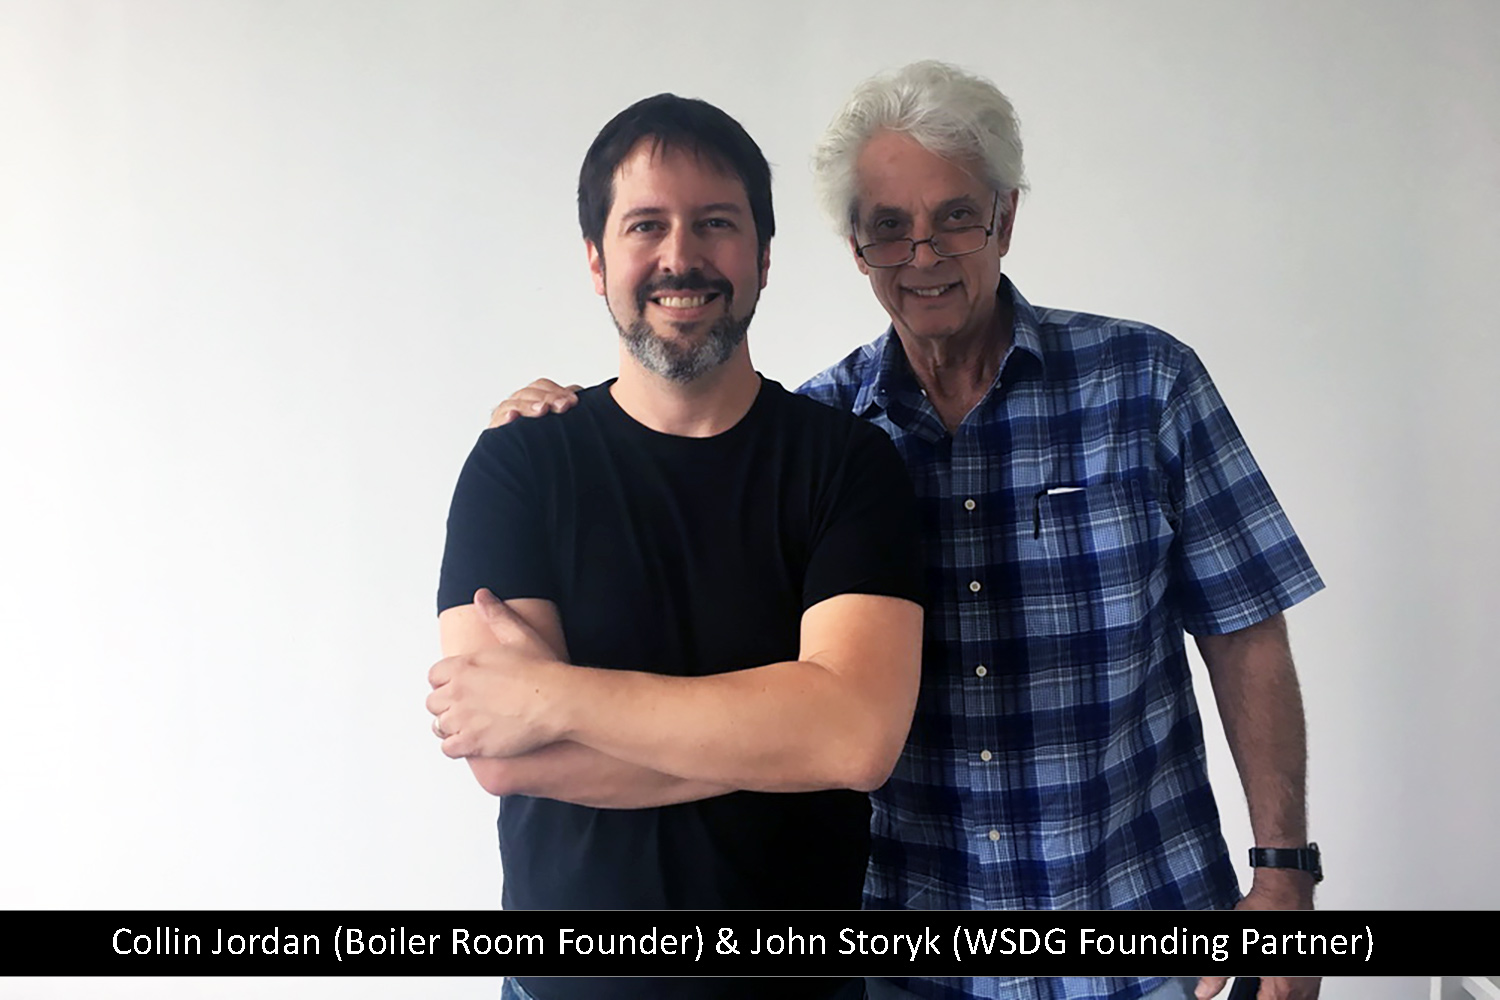 Top mastering engineer and Boiler Room founder Collin Jordan inquired WSDG to fully design his new mastering room in Chicago. WSDG's balance of technical acoustics and artistic design was spot on and made it easy to make the decision. Collin Jordan and John Storyk.